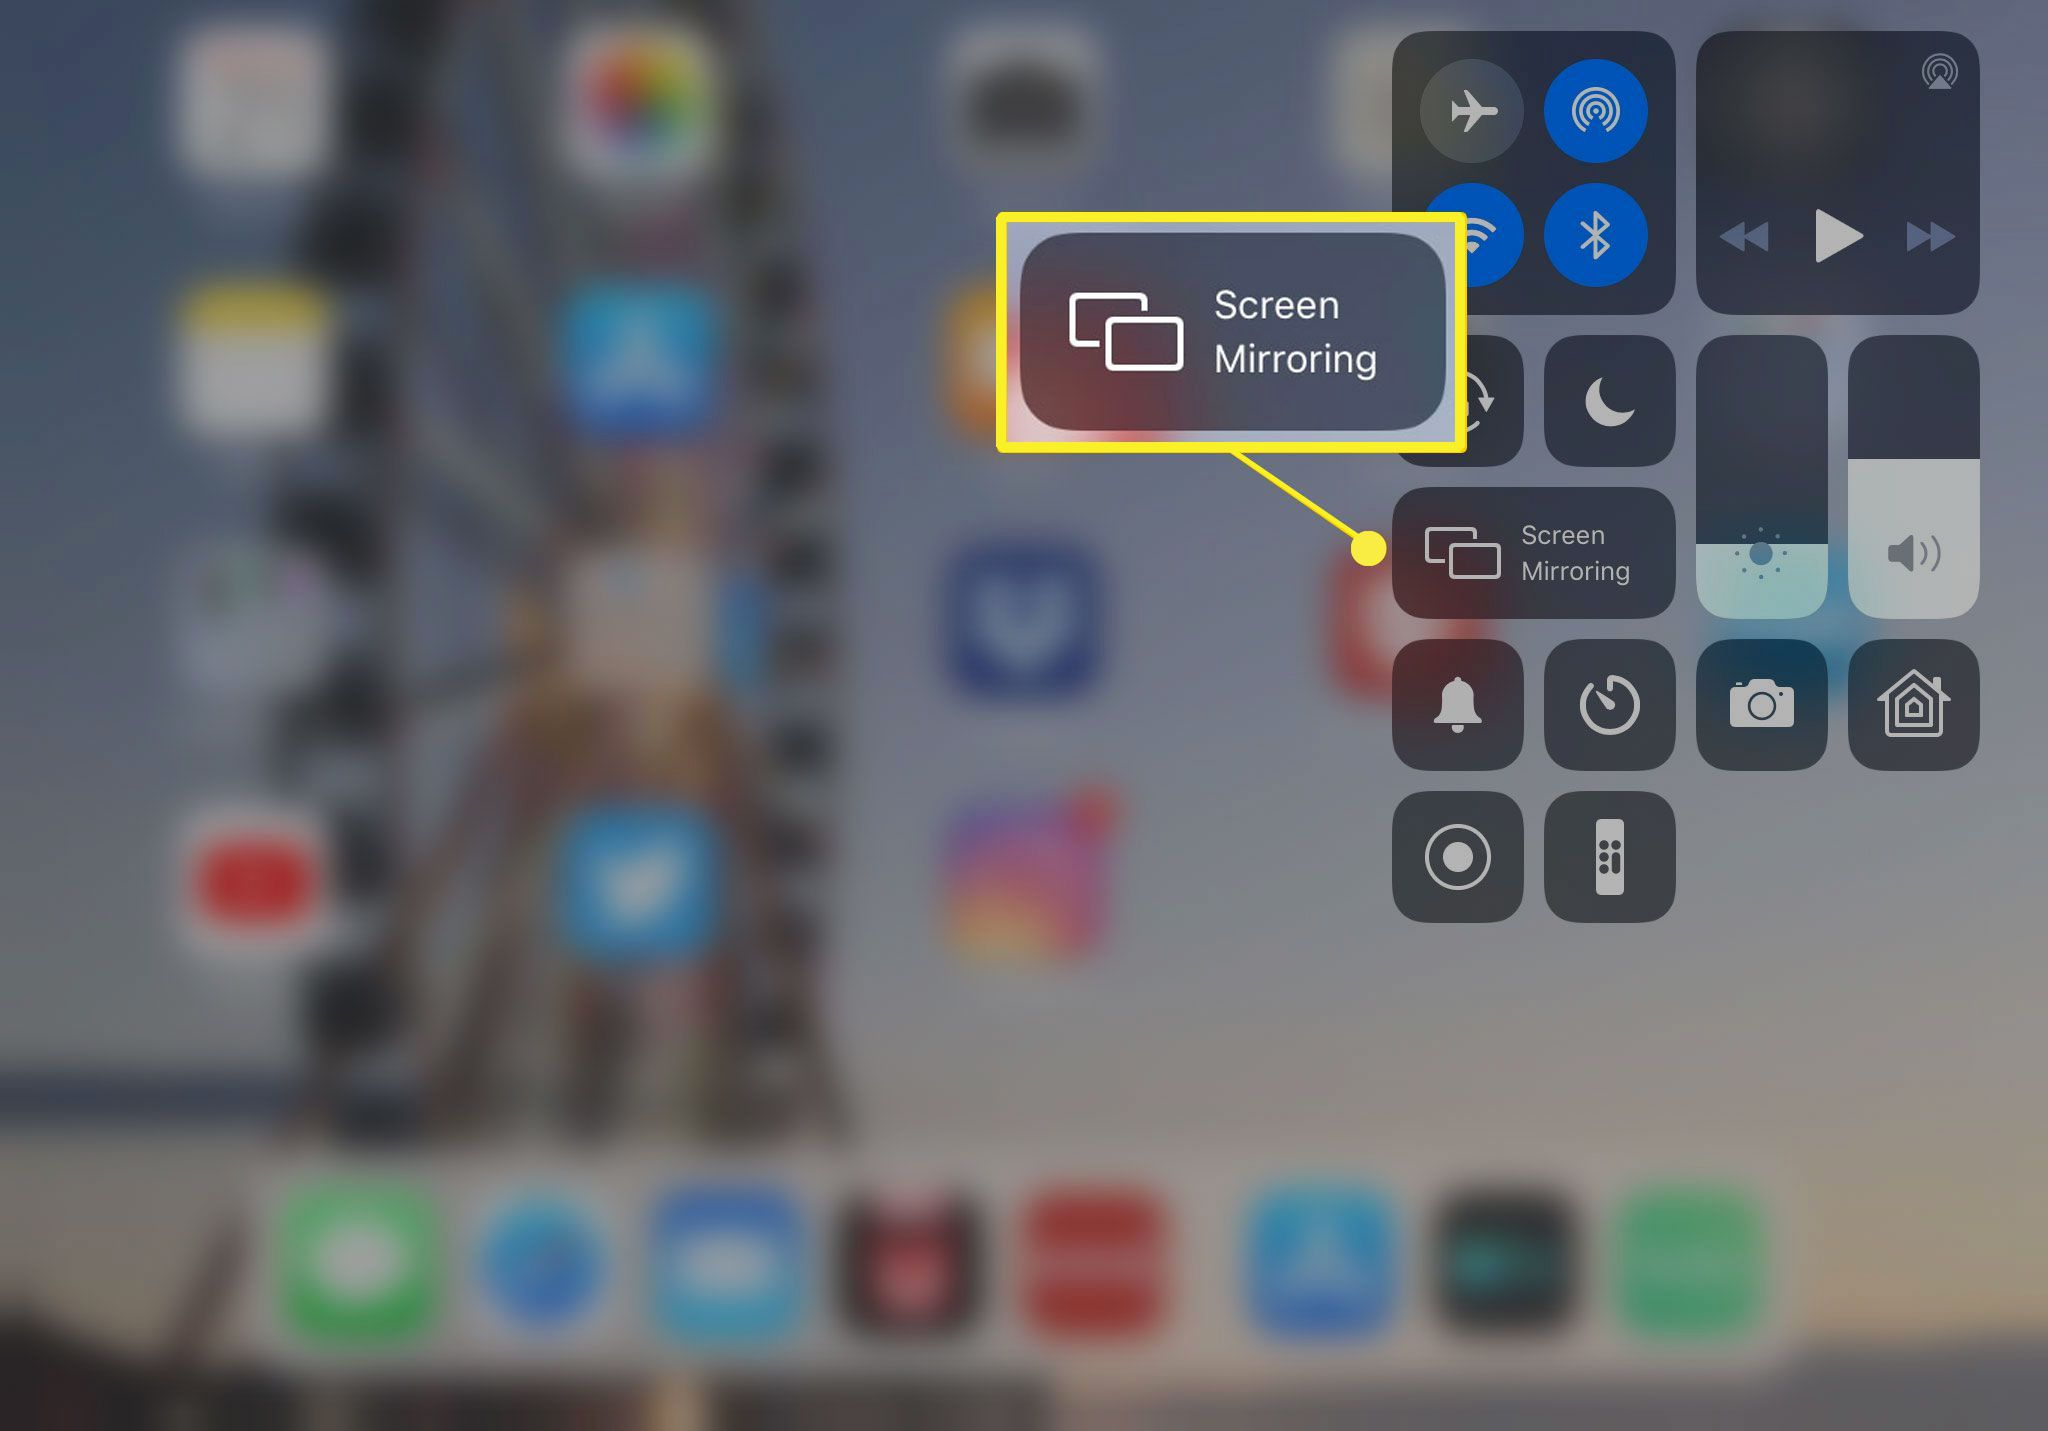 Airplay Mirroring from iPad Control Center